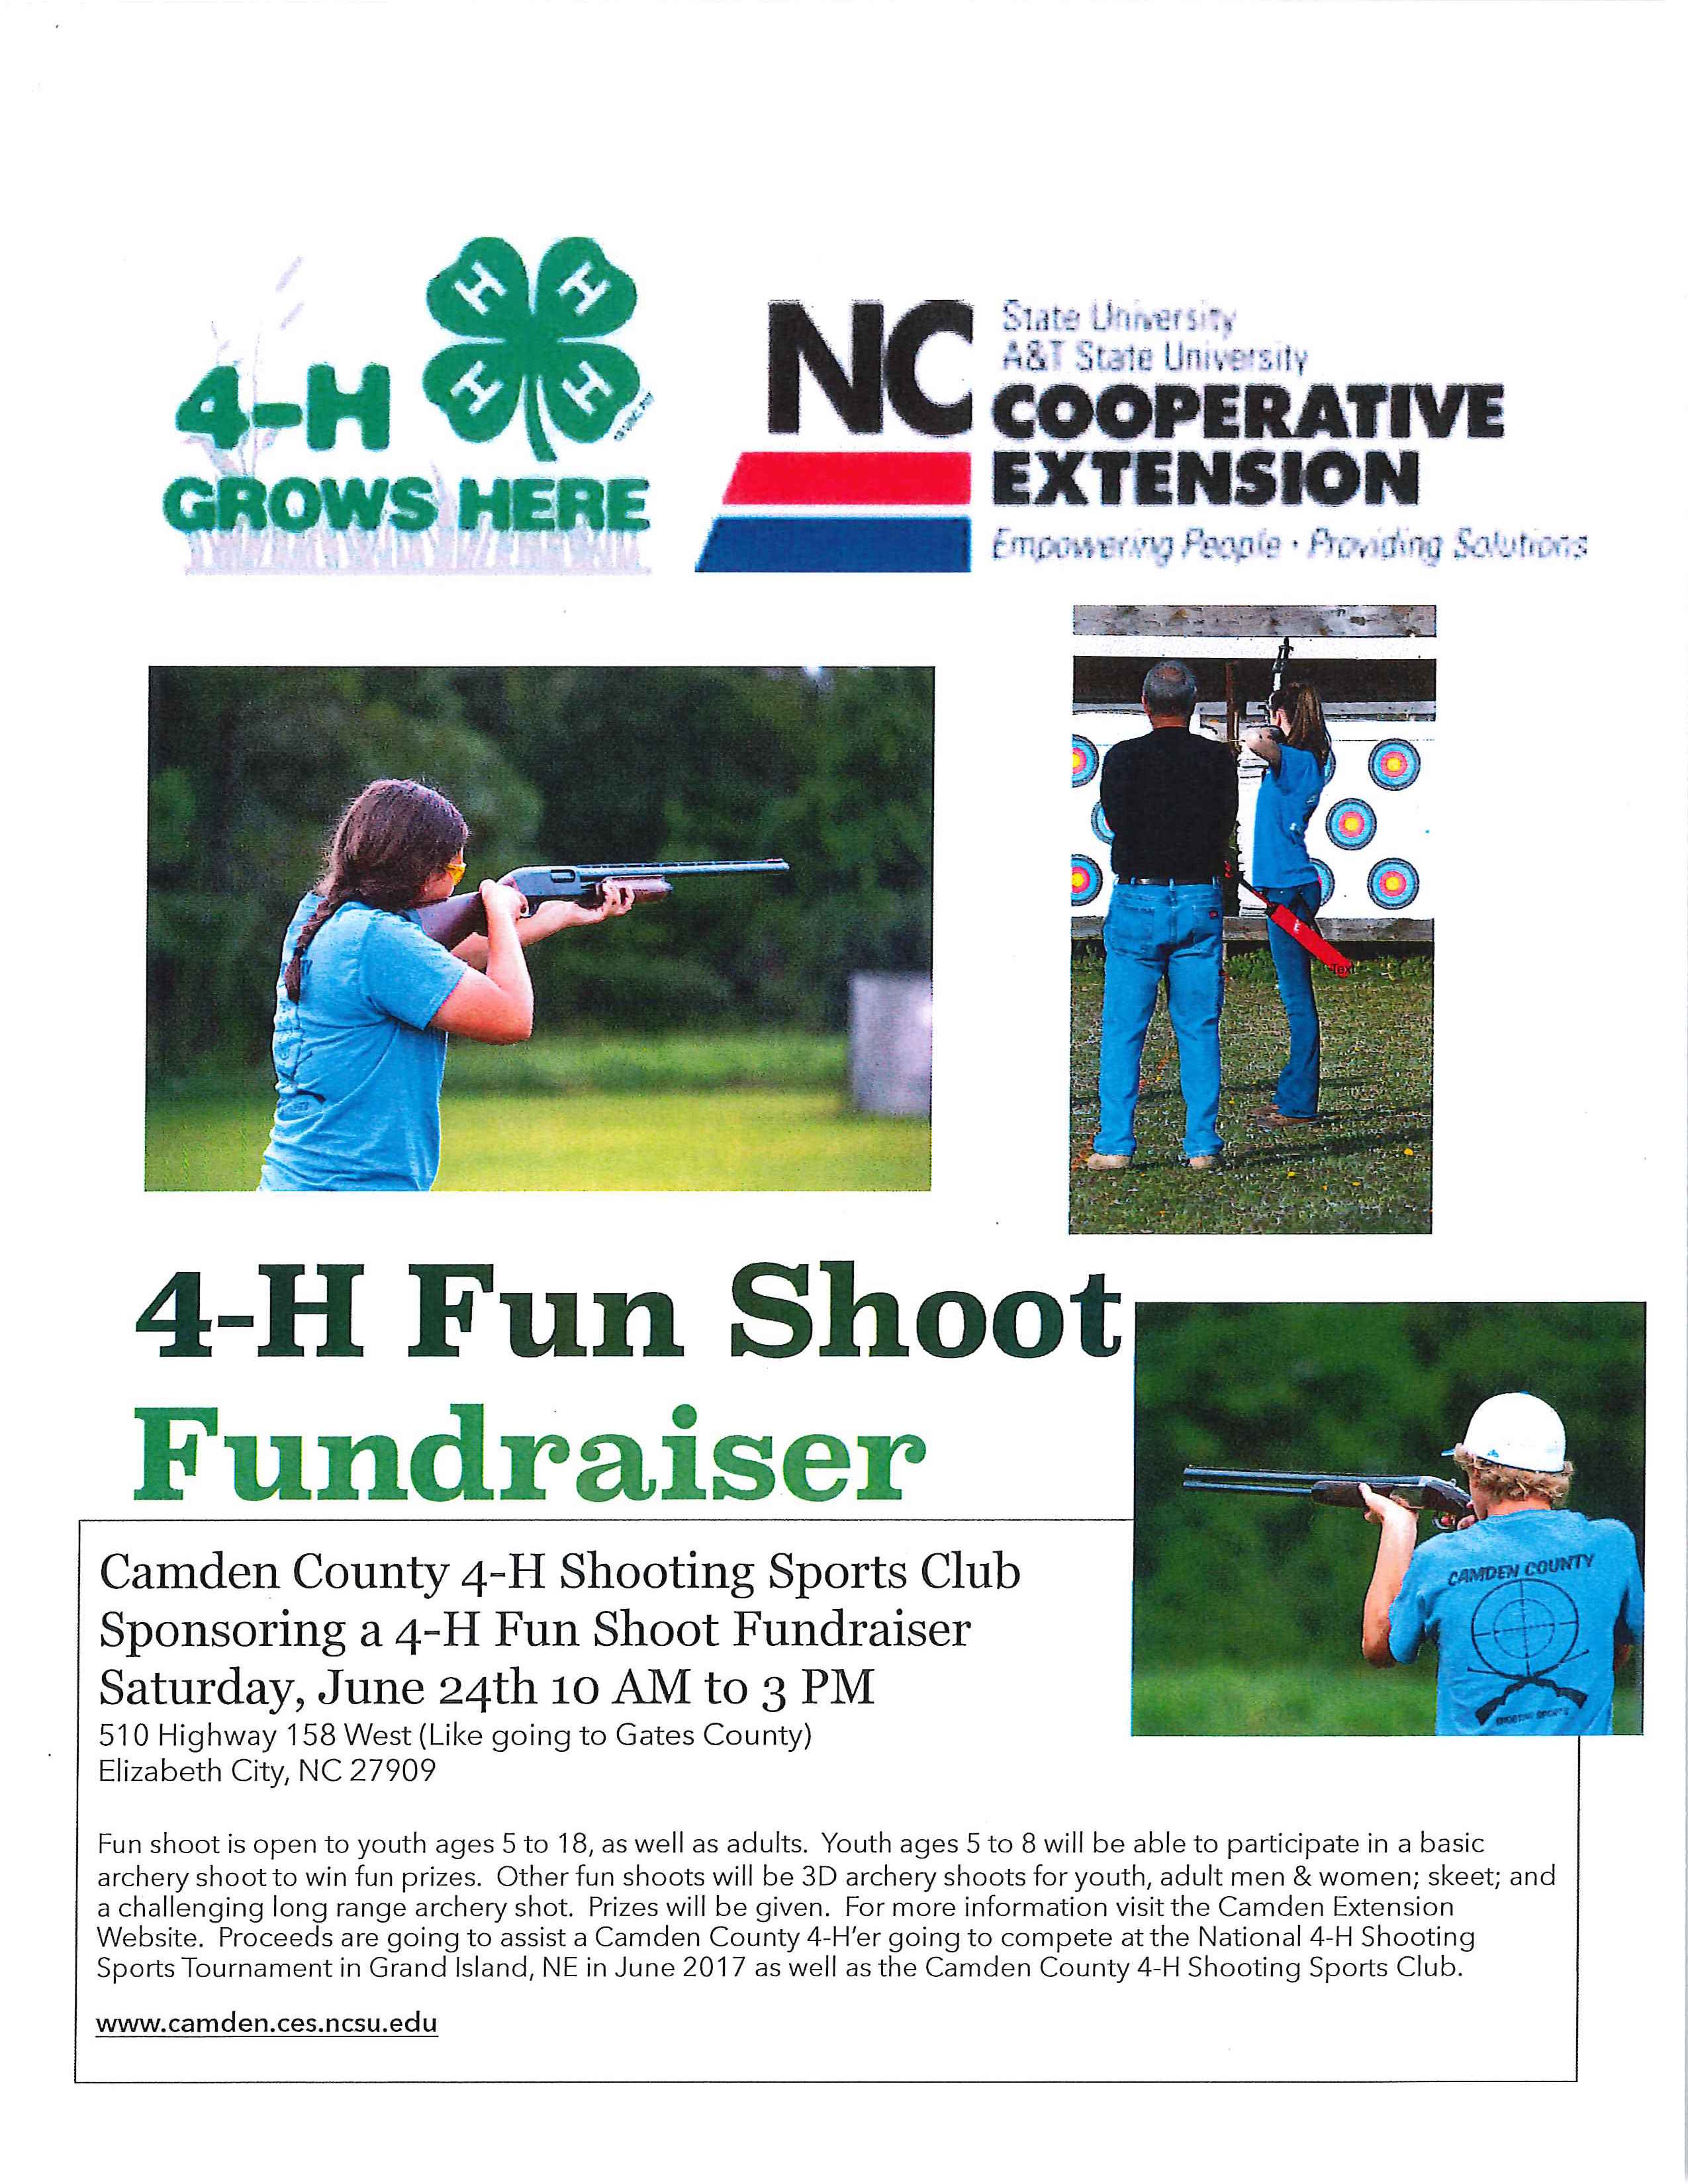 4-H Fun Shoot Fundraiser poster